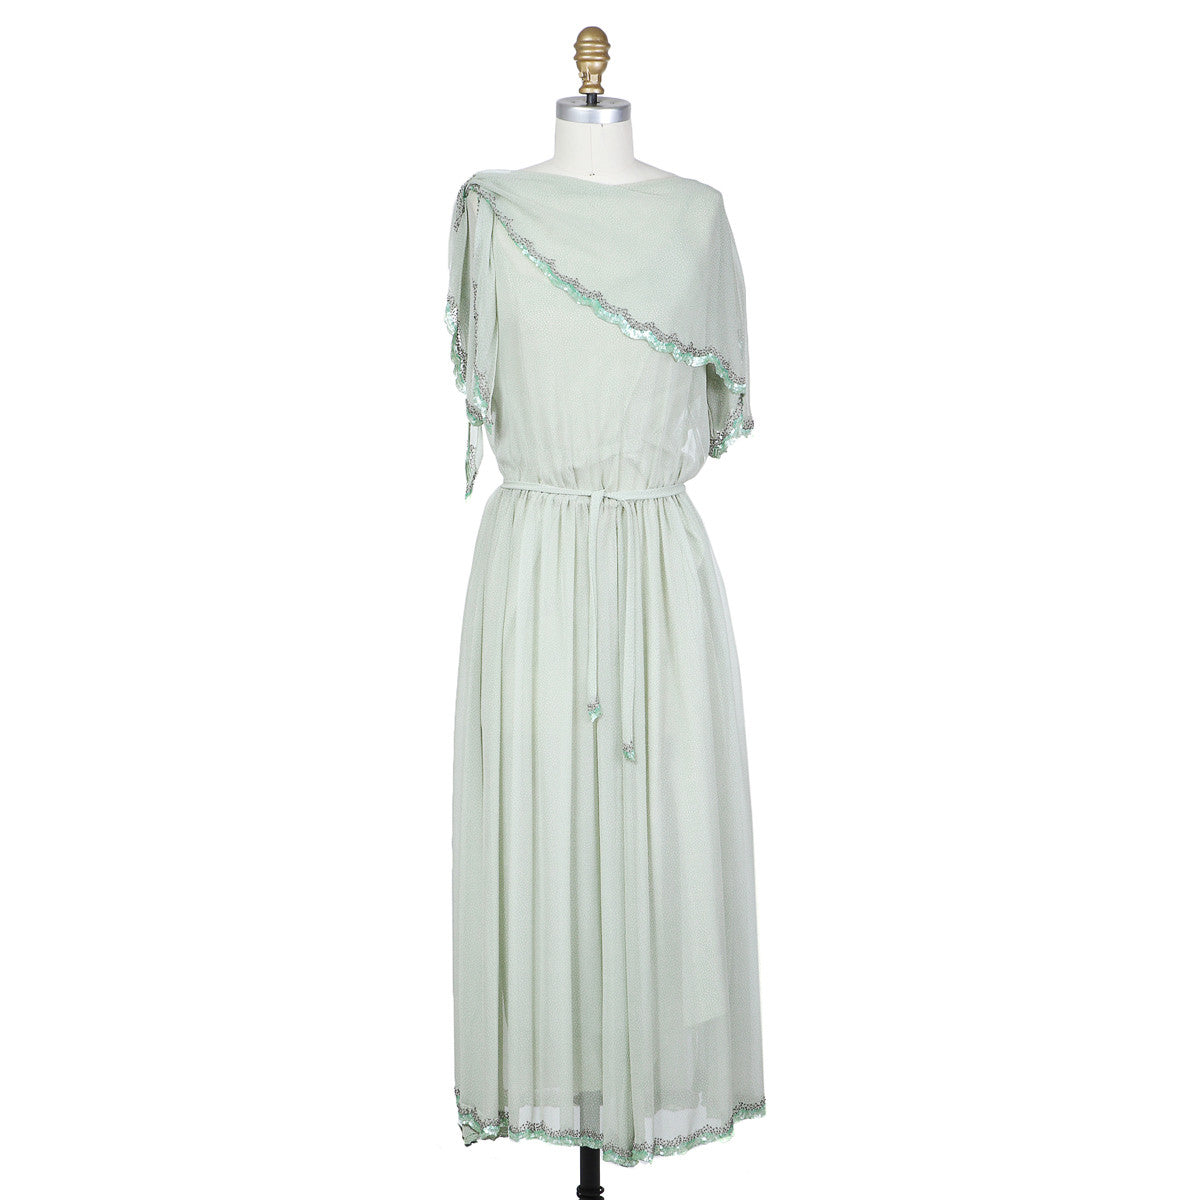 Chiffon Dress by Karl Lagerfeld circa 1970s